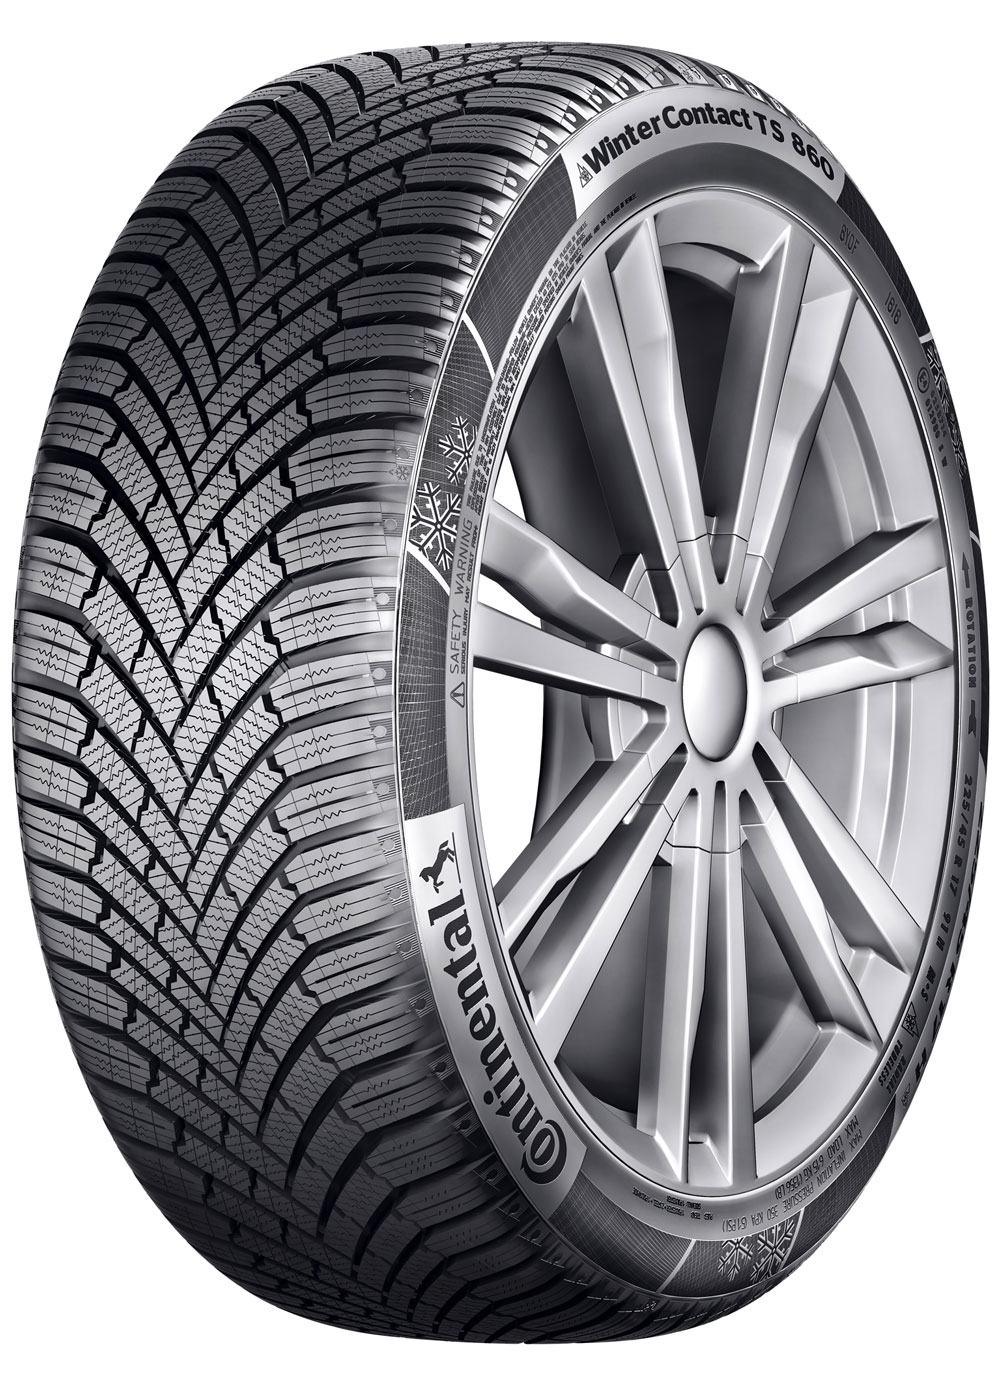 Anvelopa Iarna Continental Winter Contact Ts860s 295/40RR21 111V